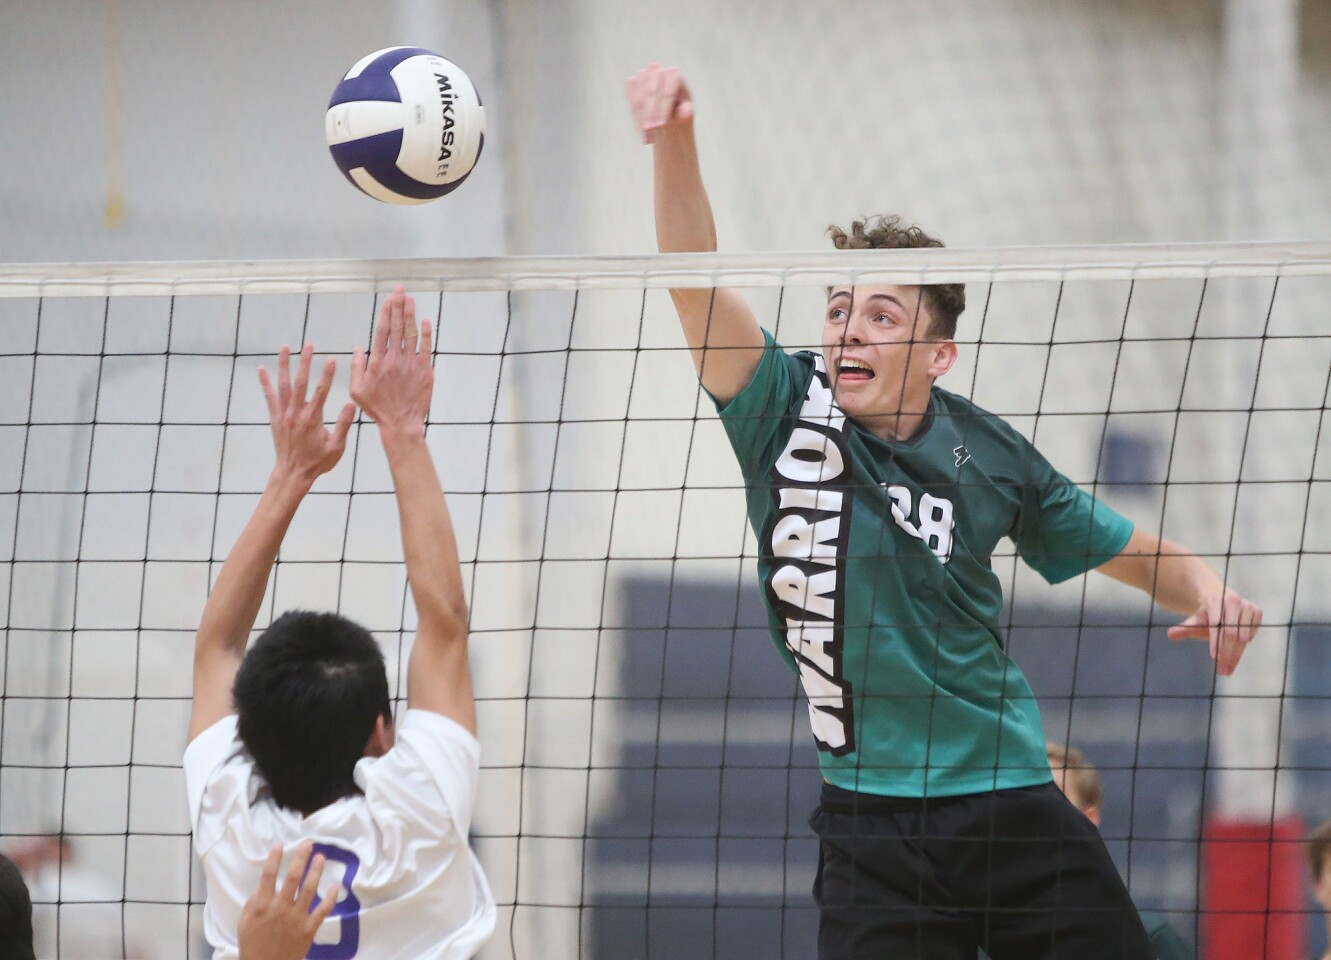 Brethren Christian versus Emerson Honors in boys' volleyball